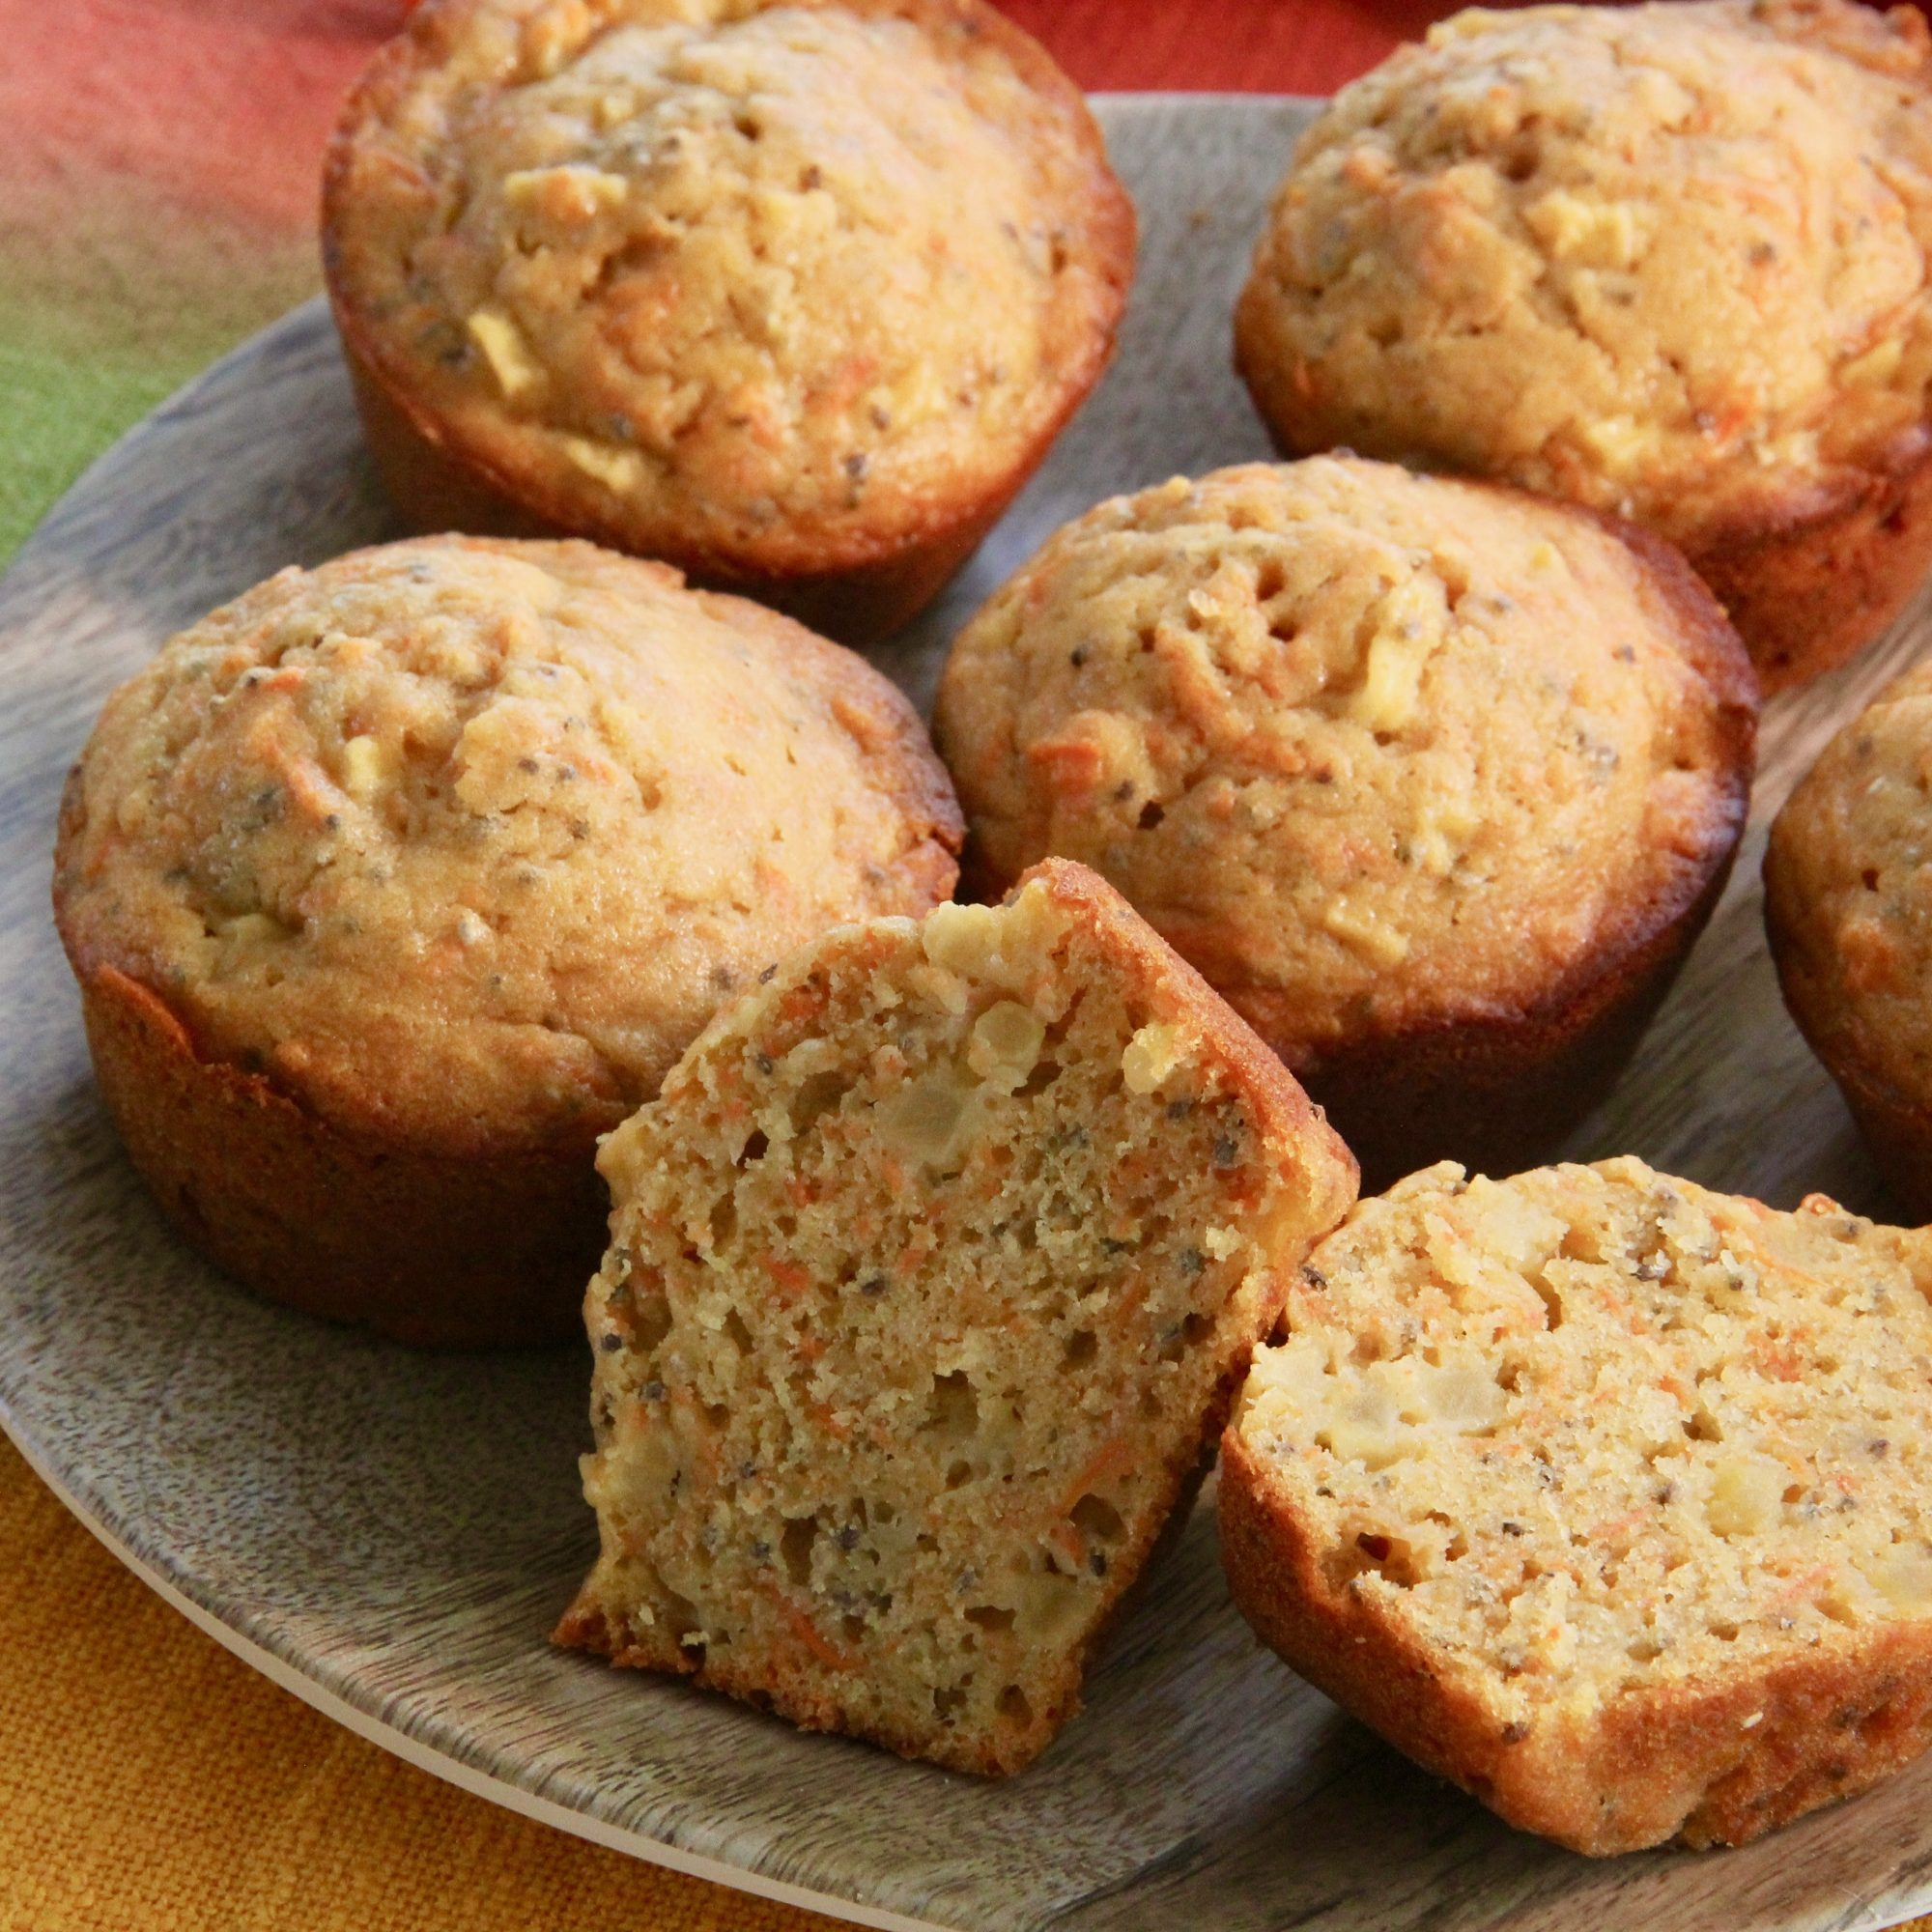 Apple, Carrot, and Chia Muffins